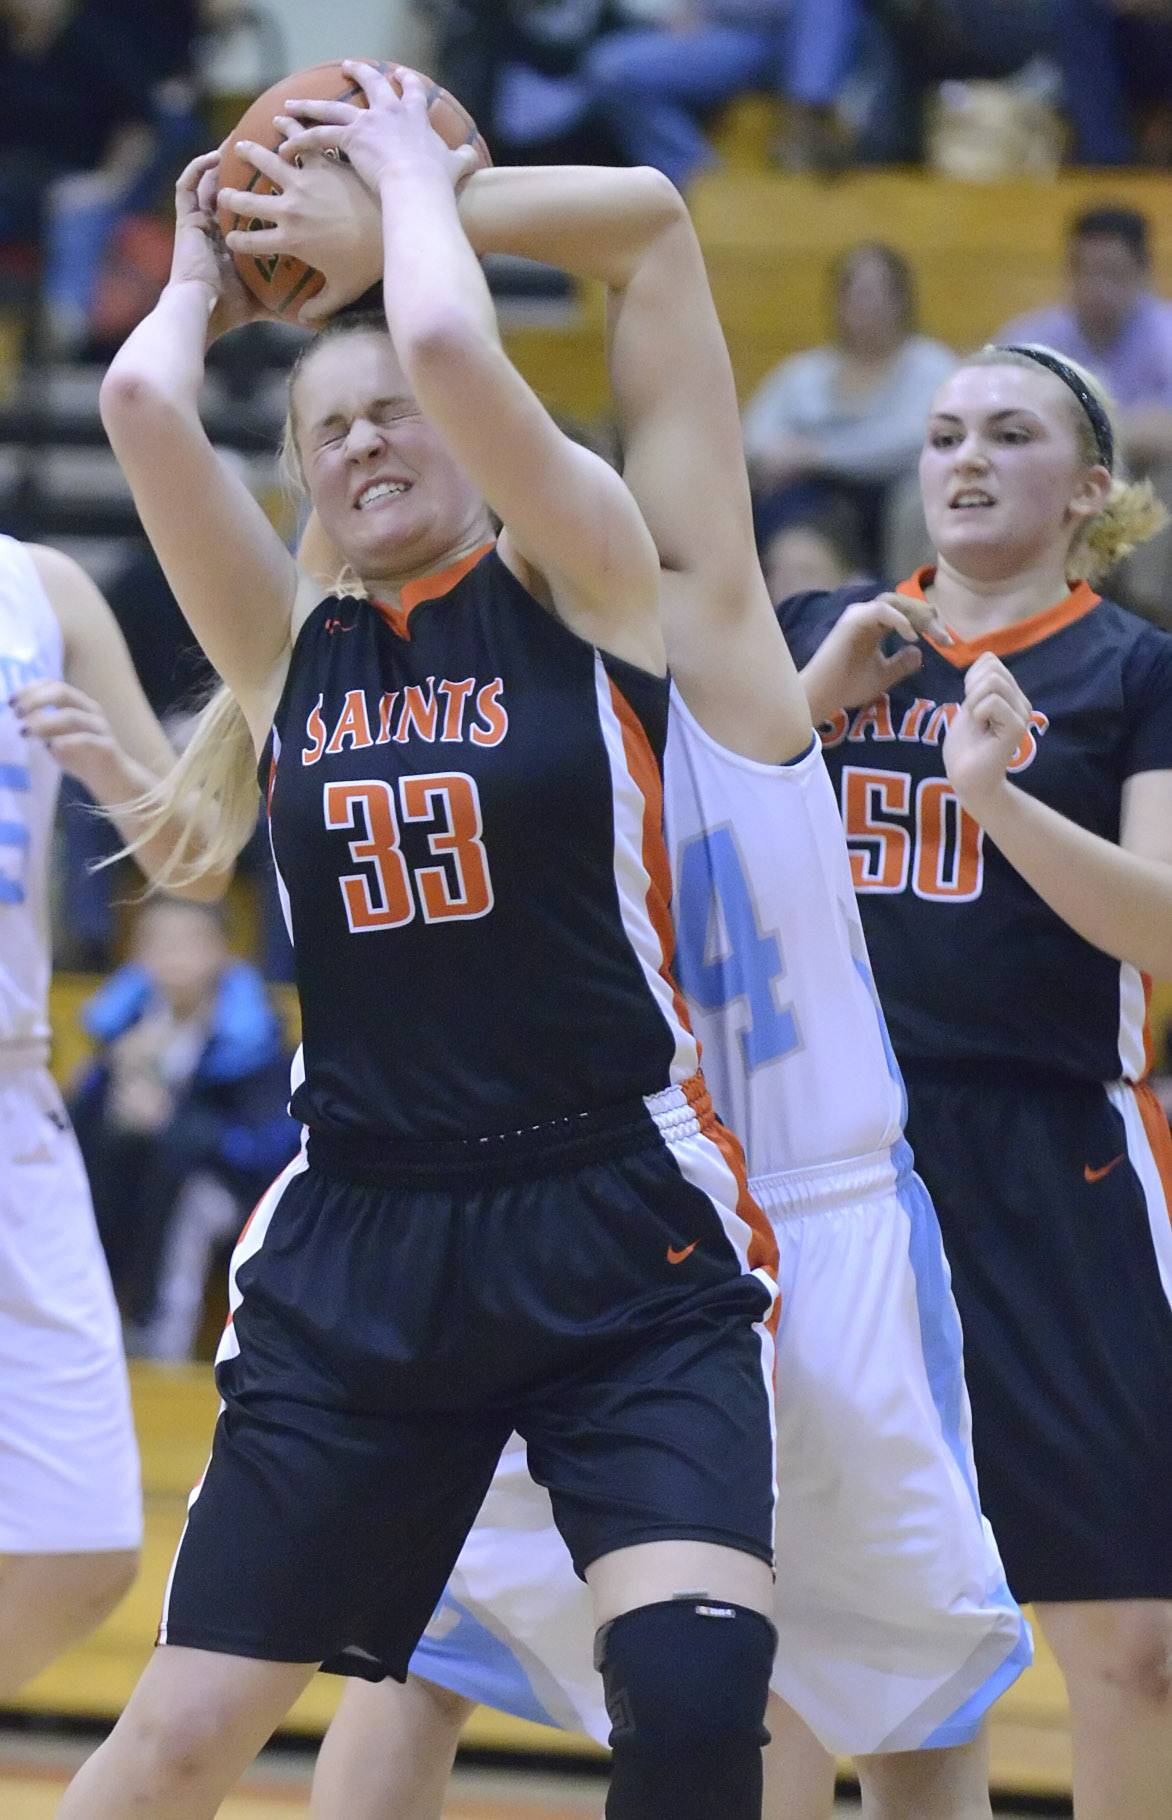 St. Charles East's Hannah Nowling and Willowbrook's Alyssa Ressinger wrestle for a rebound in the second quarter .